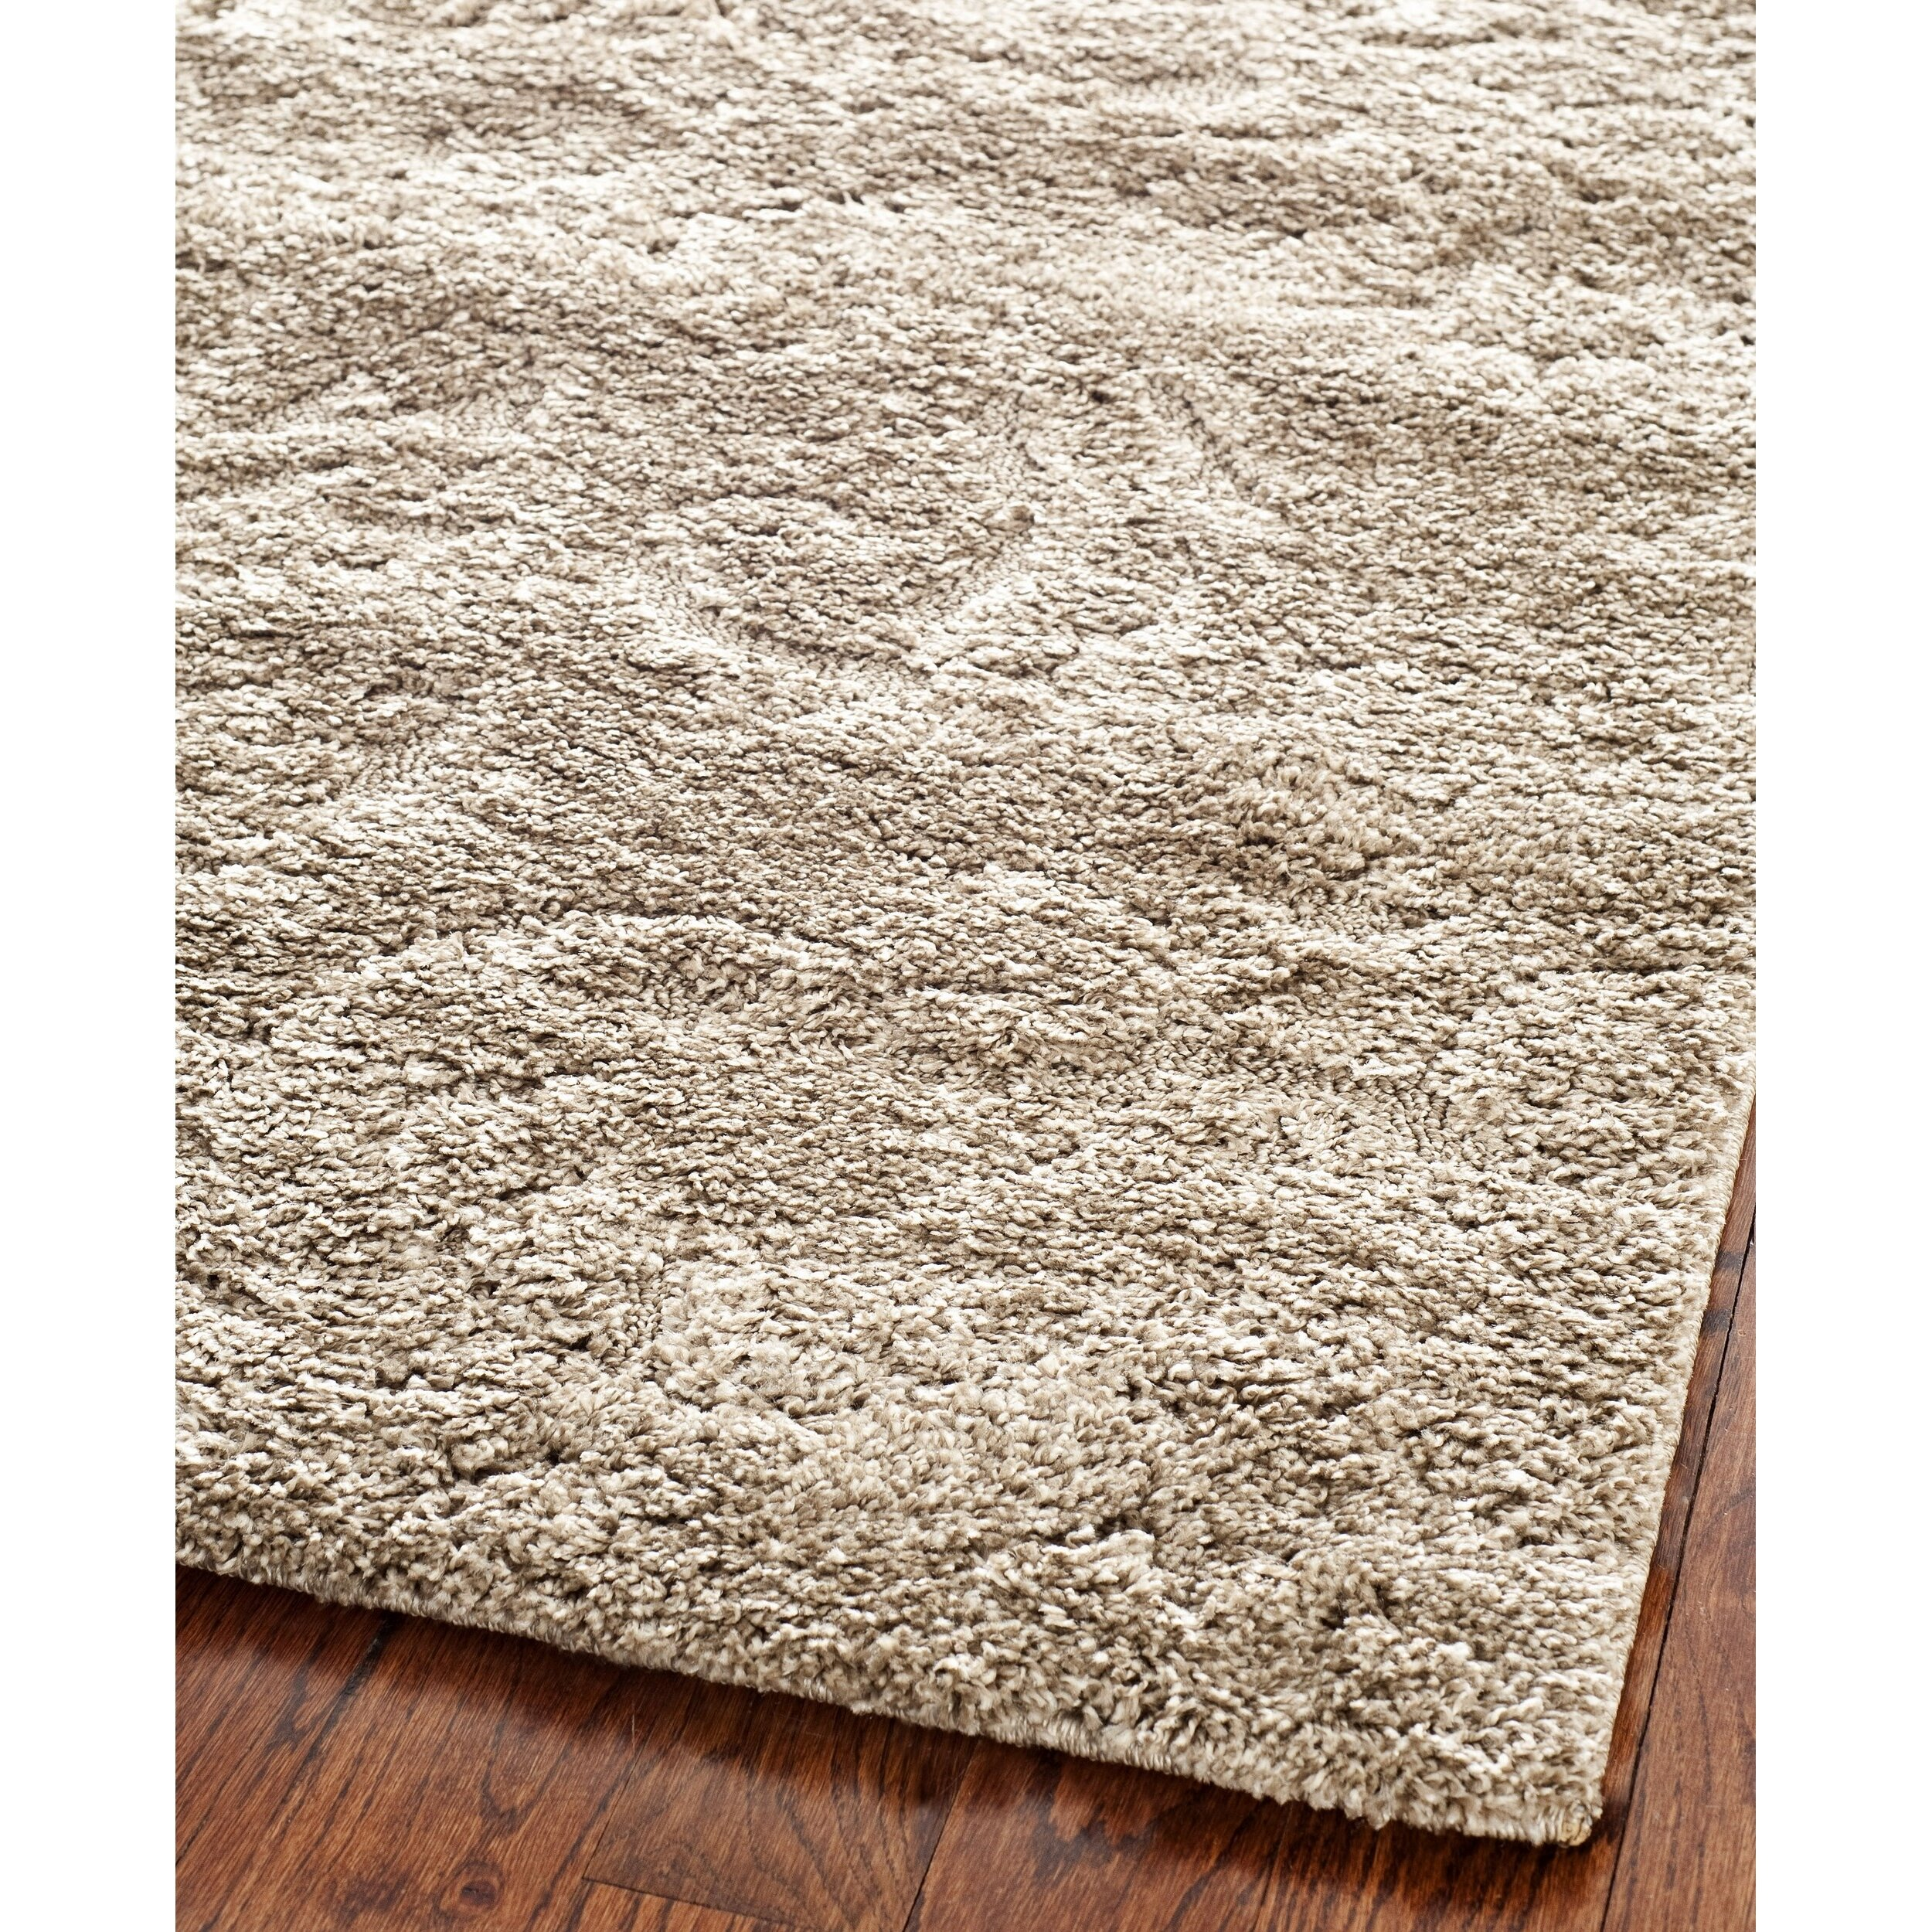 House Of Hampton Flanery Beige/Cream Area Rug & Reviews